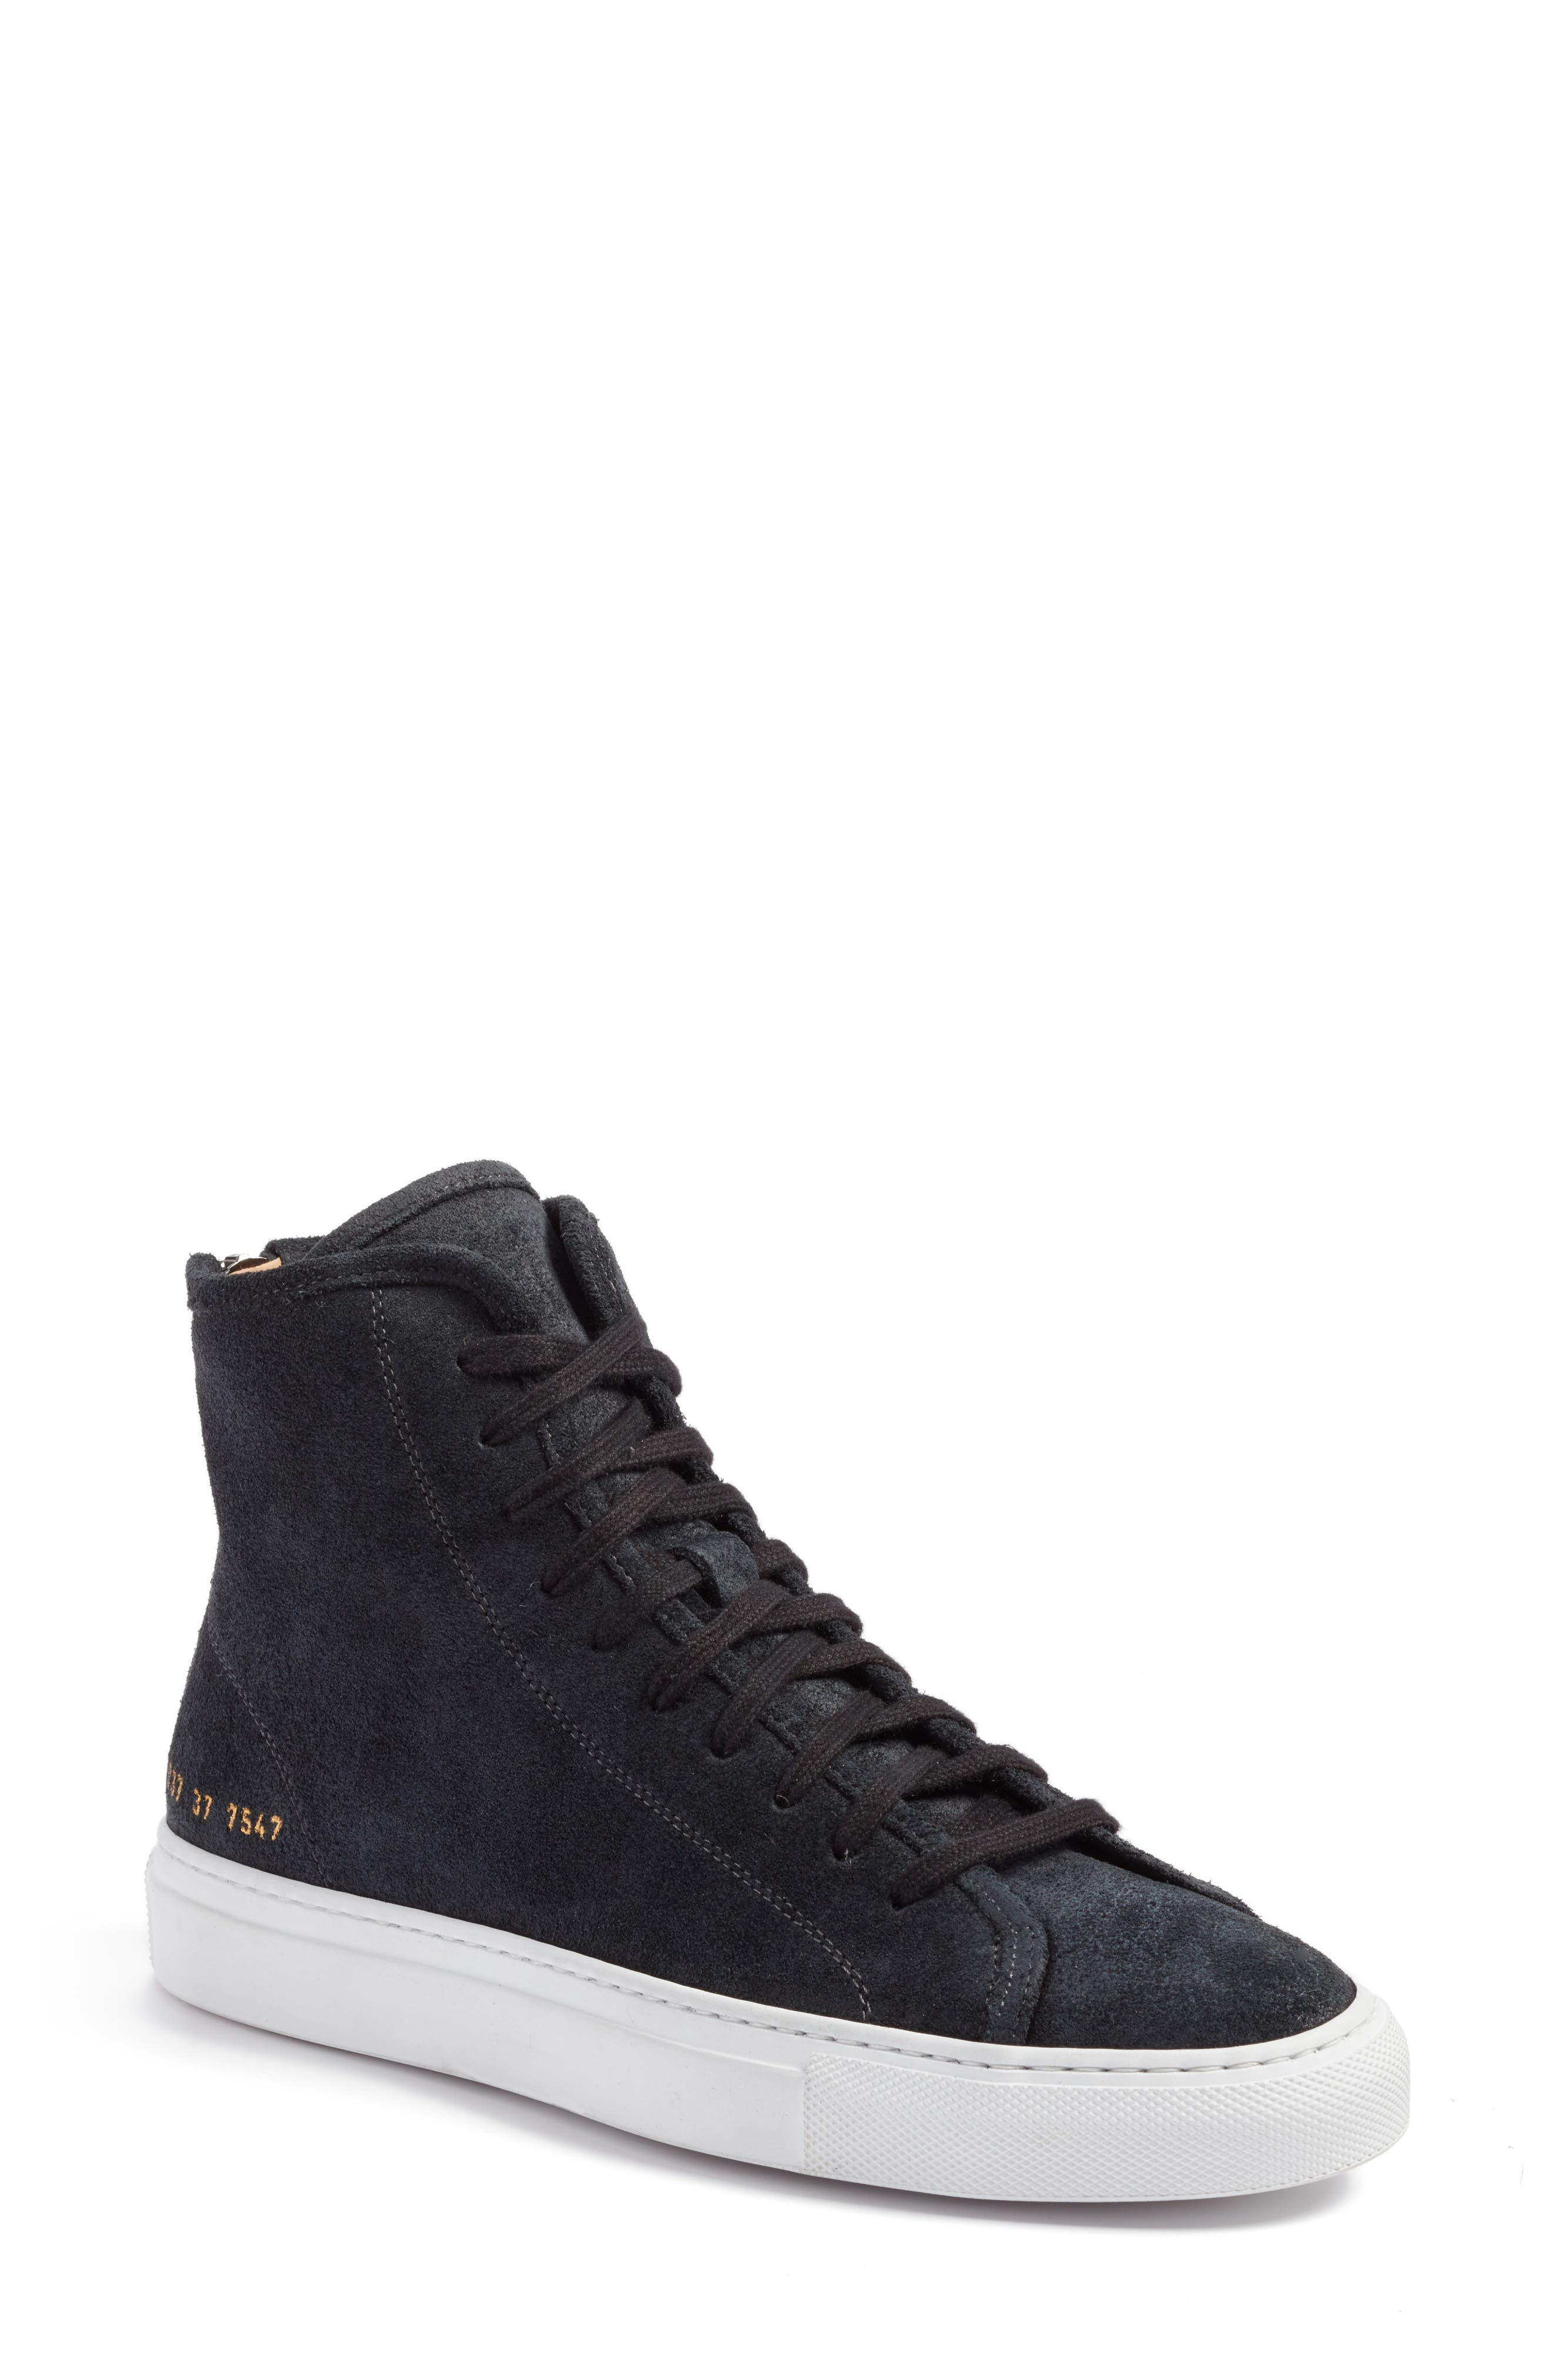 Tournament High Top Sneakers,                             Main thumbnail 1, color,